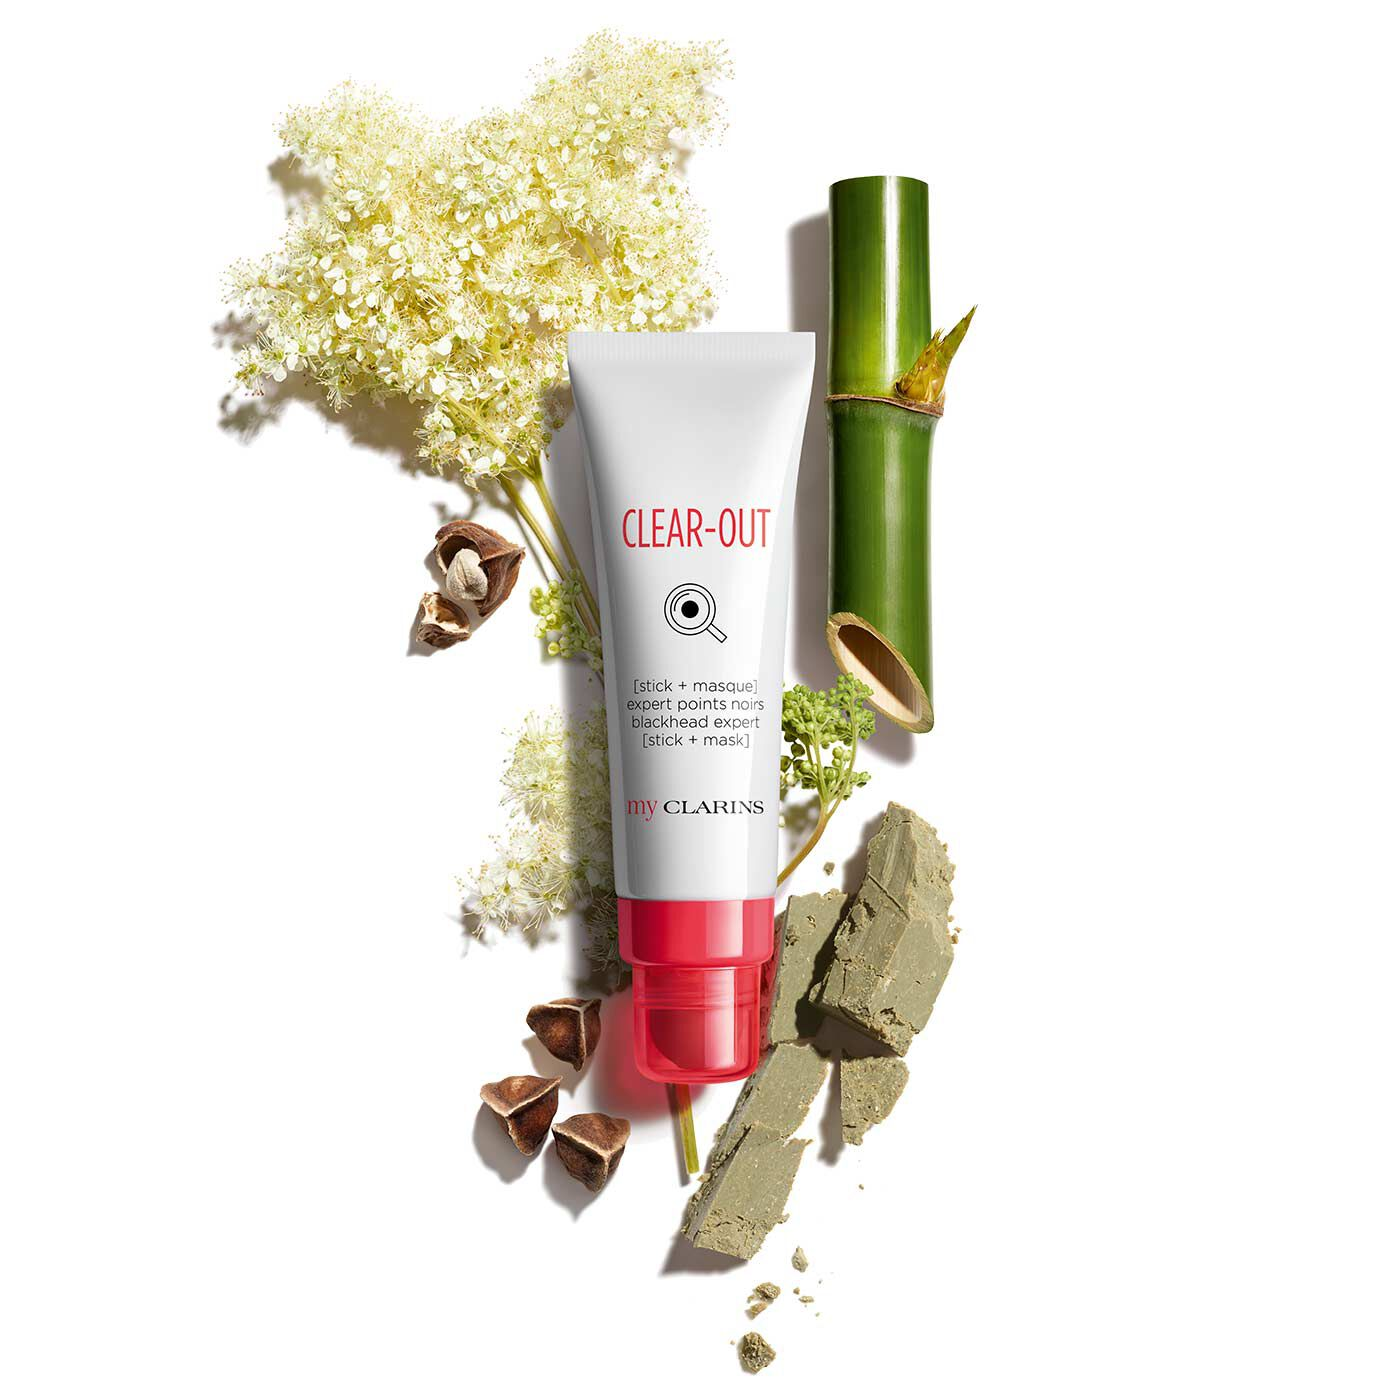 My Clarins Clear-Out Blackhead Expert